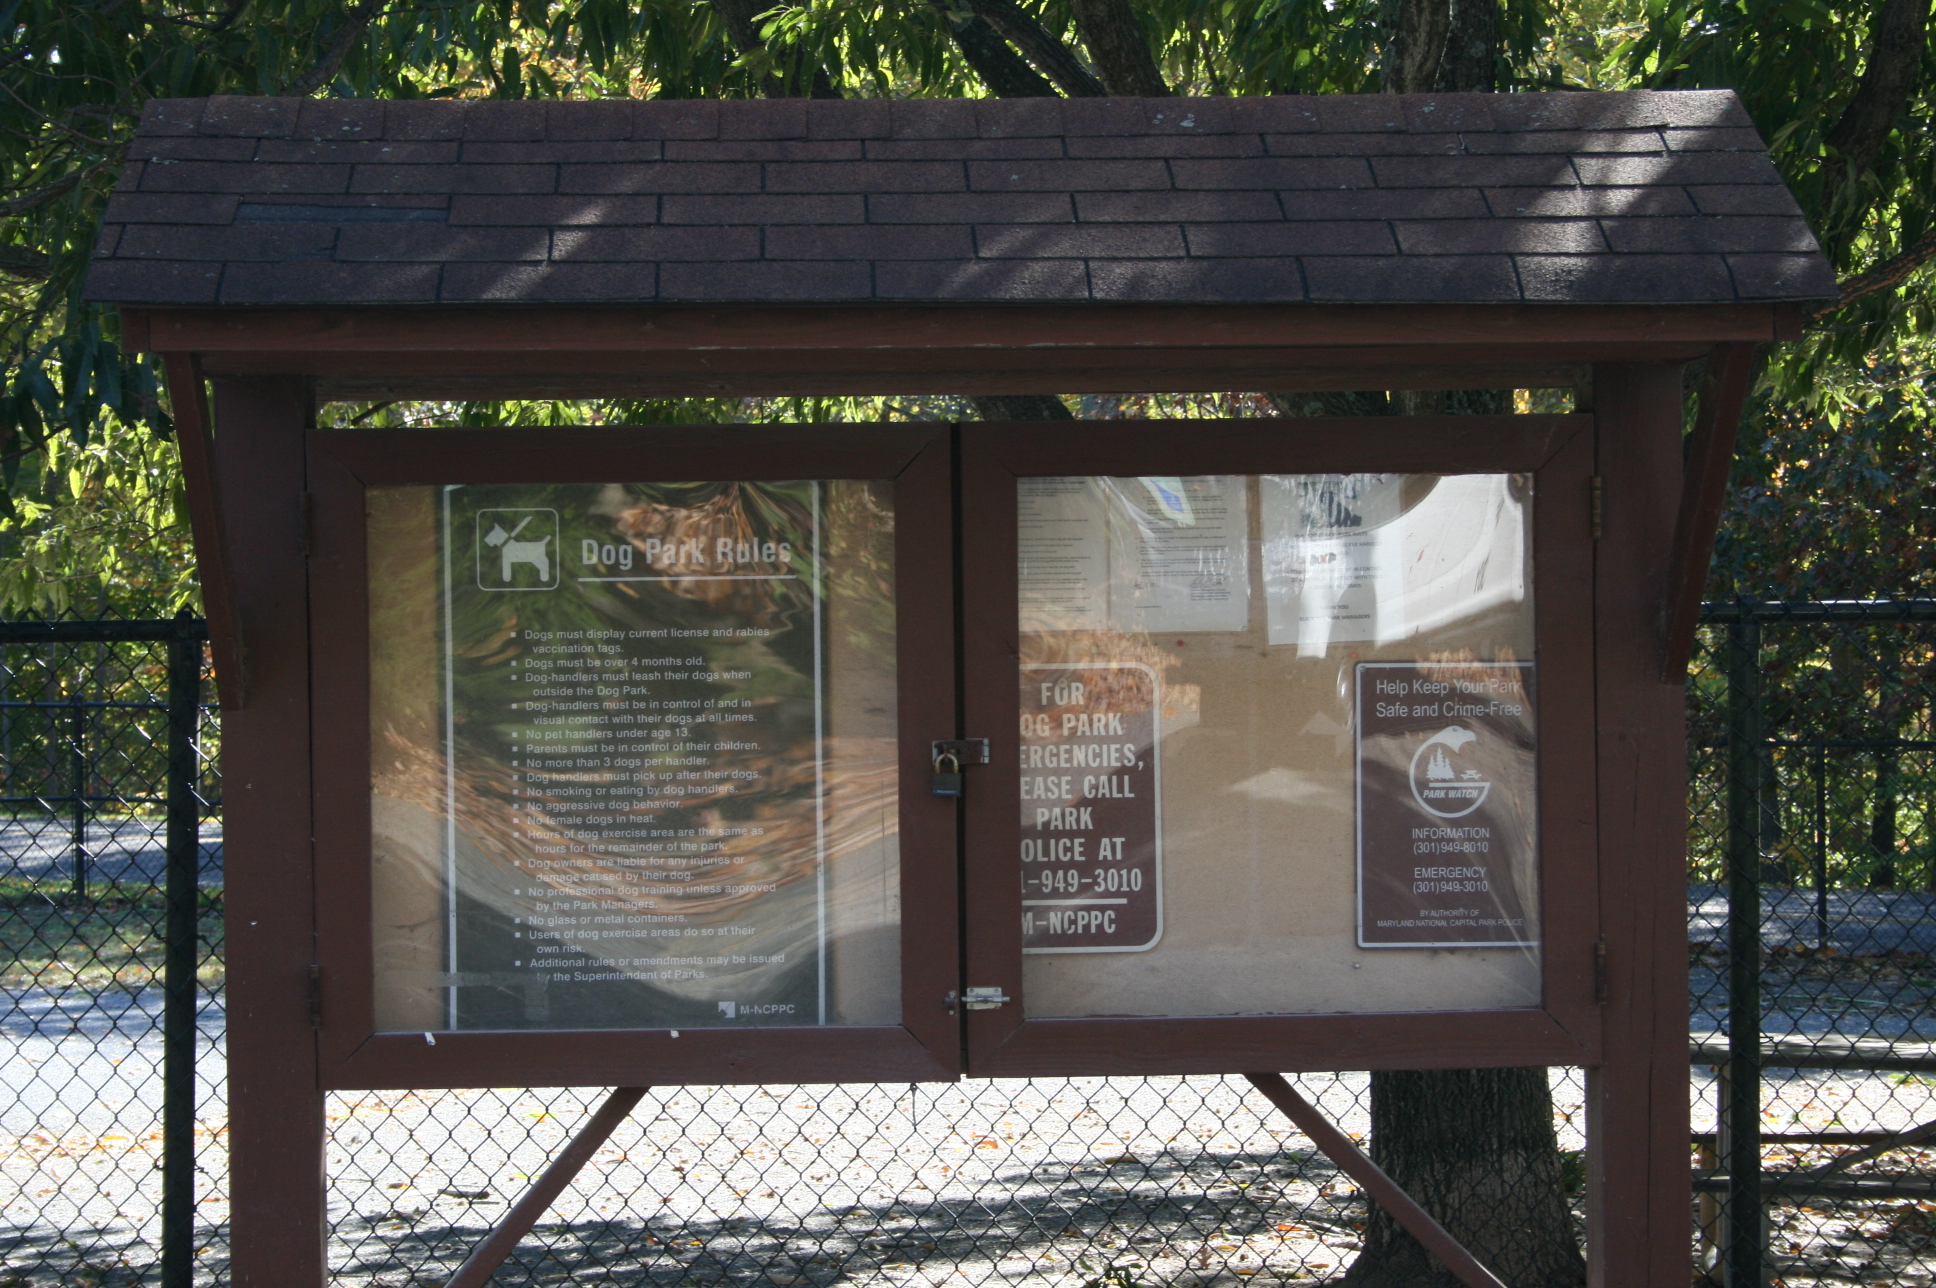 Black Hill Dog park Kiosk